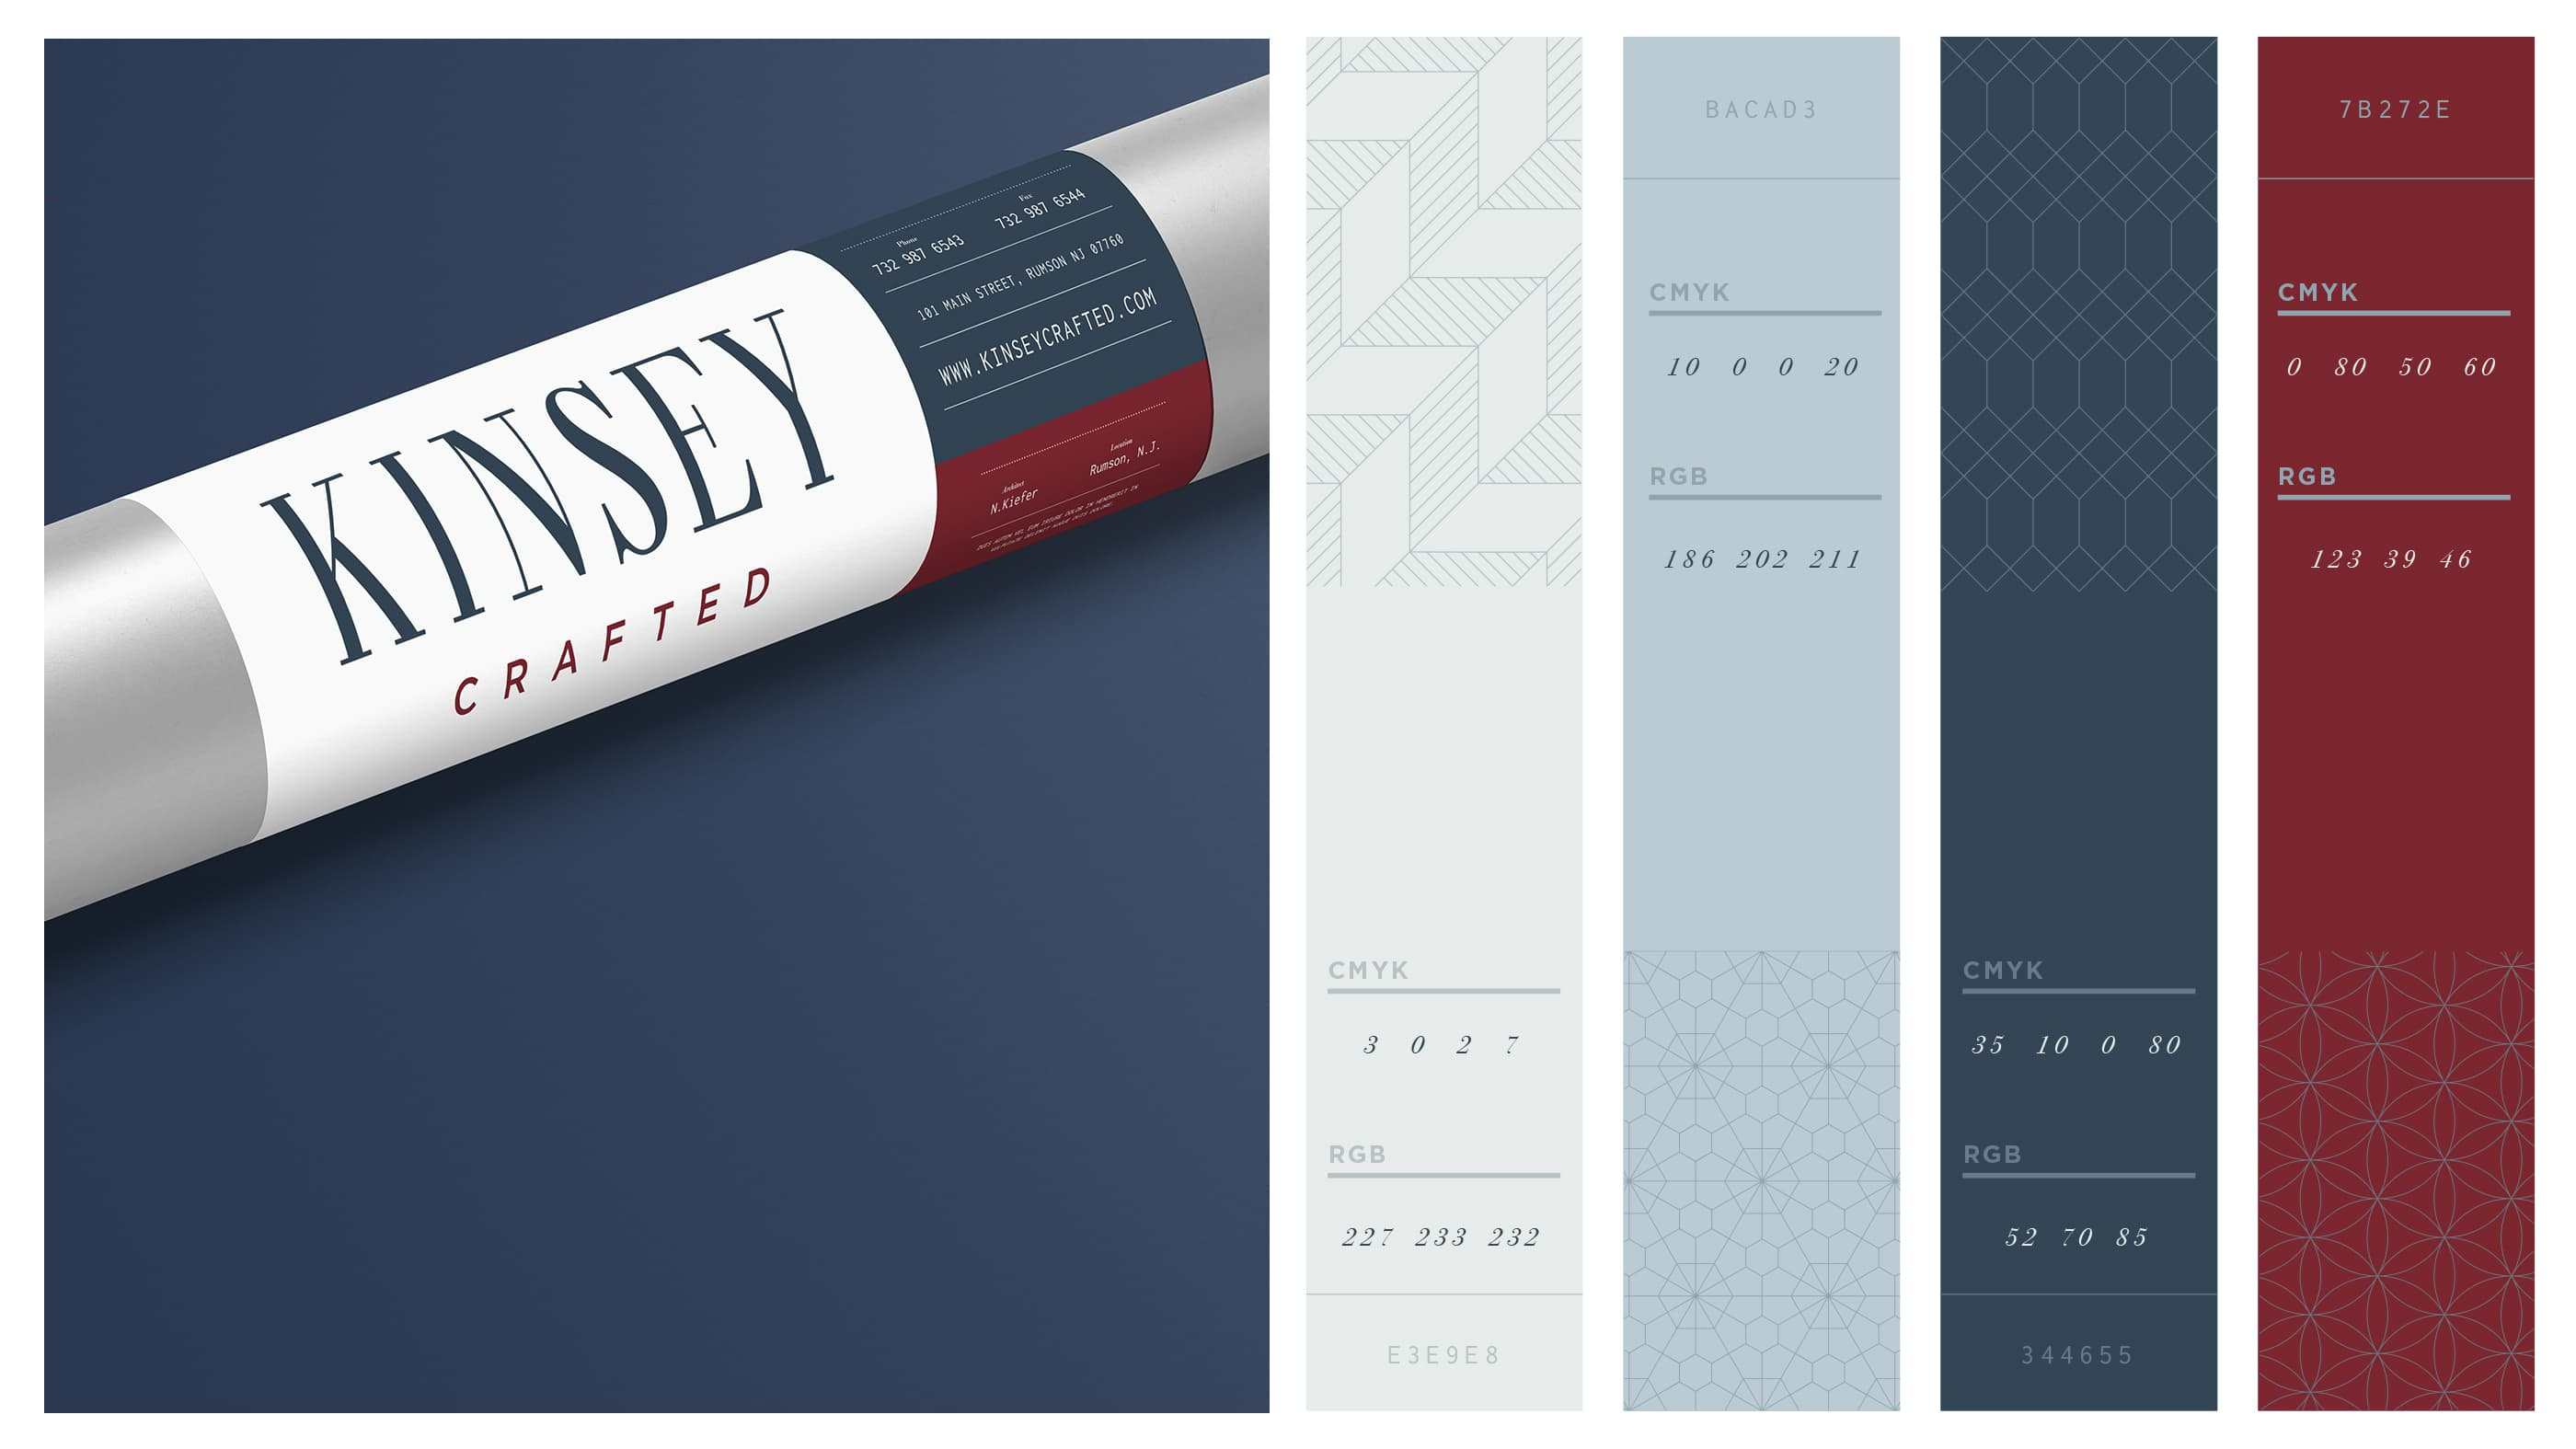 Kinsey Crafted Colors and Textures